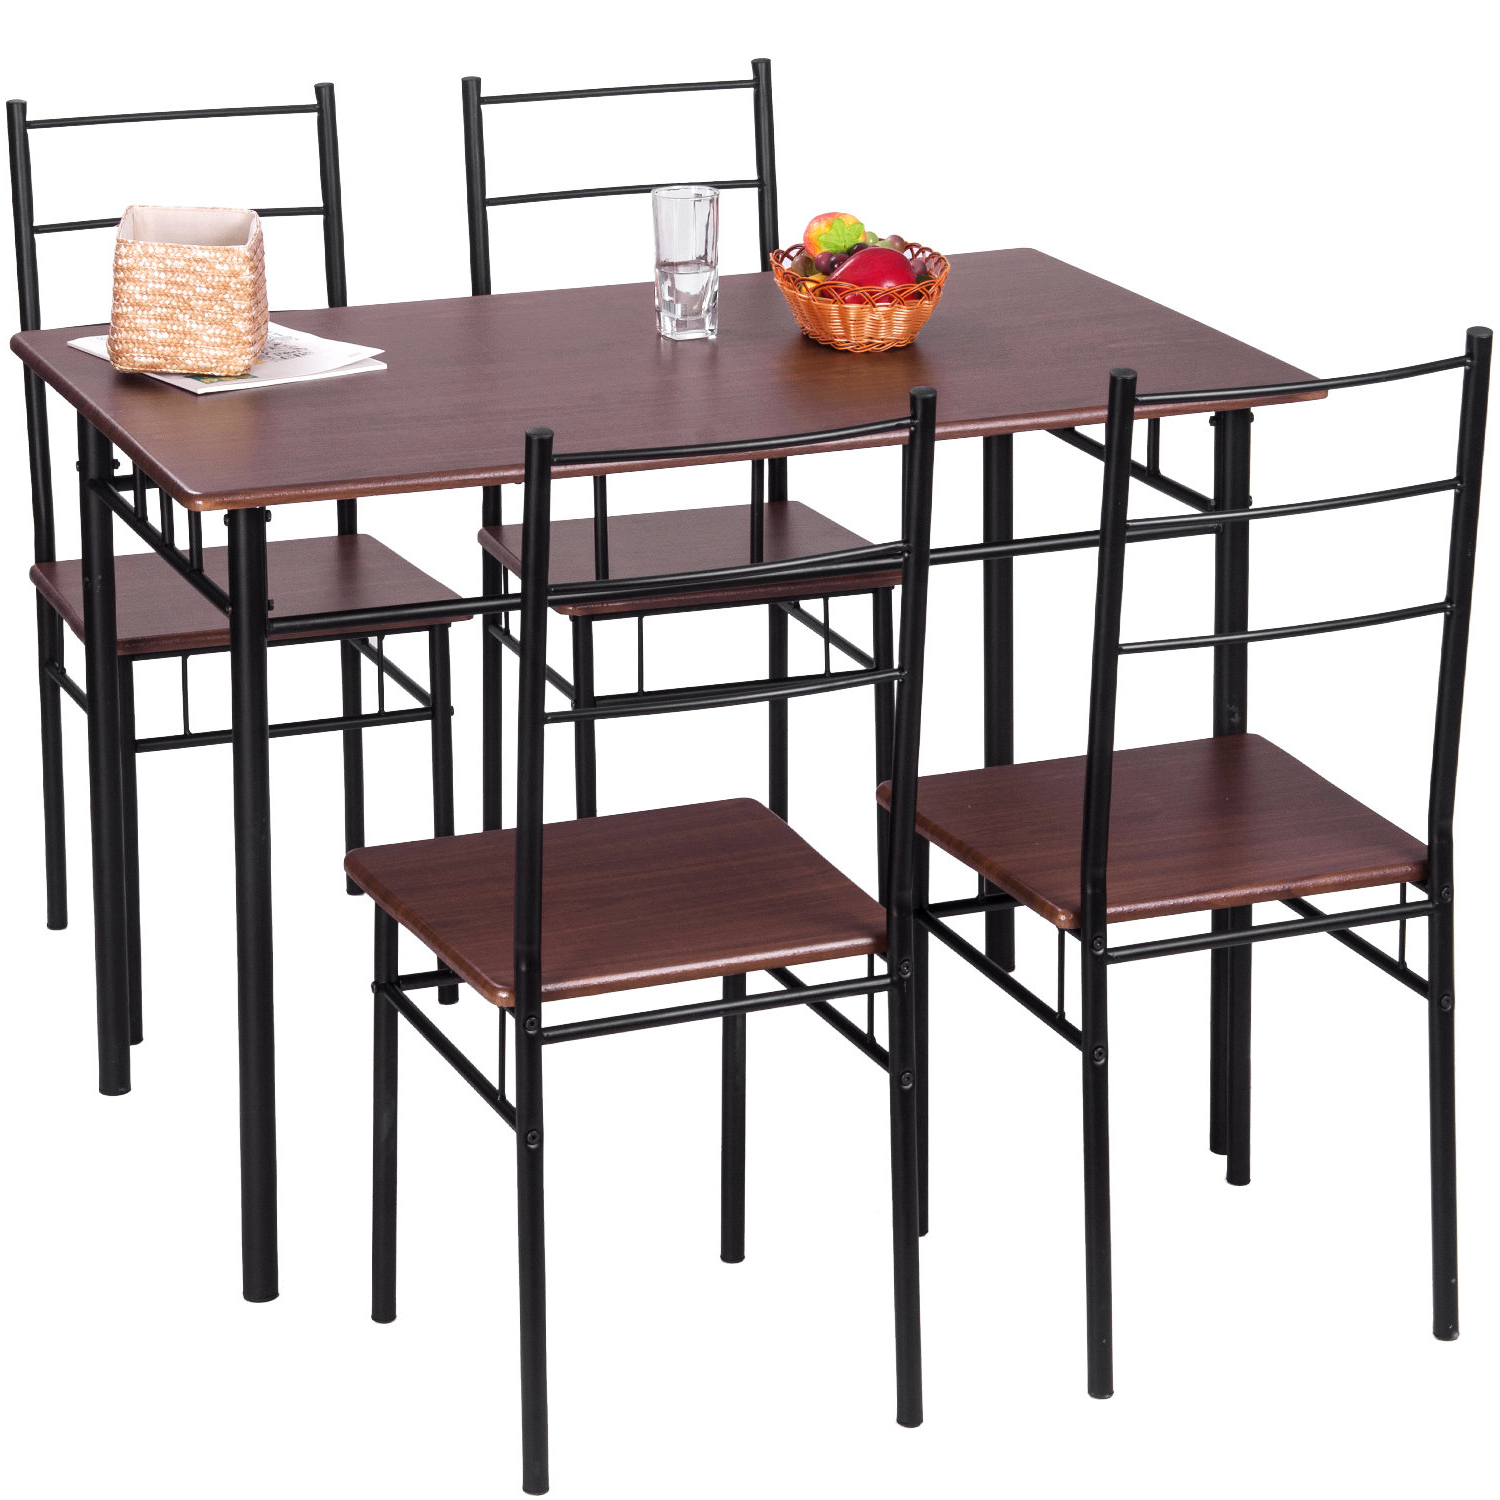 Mulvey 5 Piece Dining Sets Regarding Latest 5 Piece Breakfast Nook Dining Set (View 14 of 20)